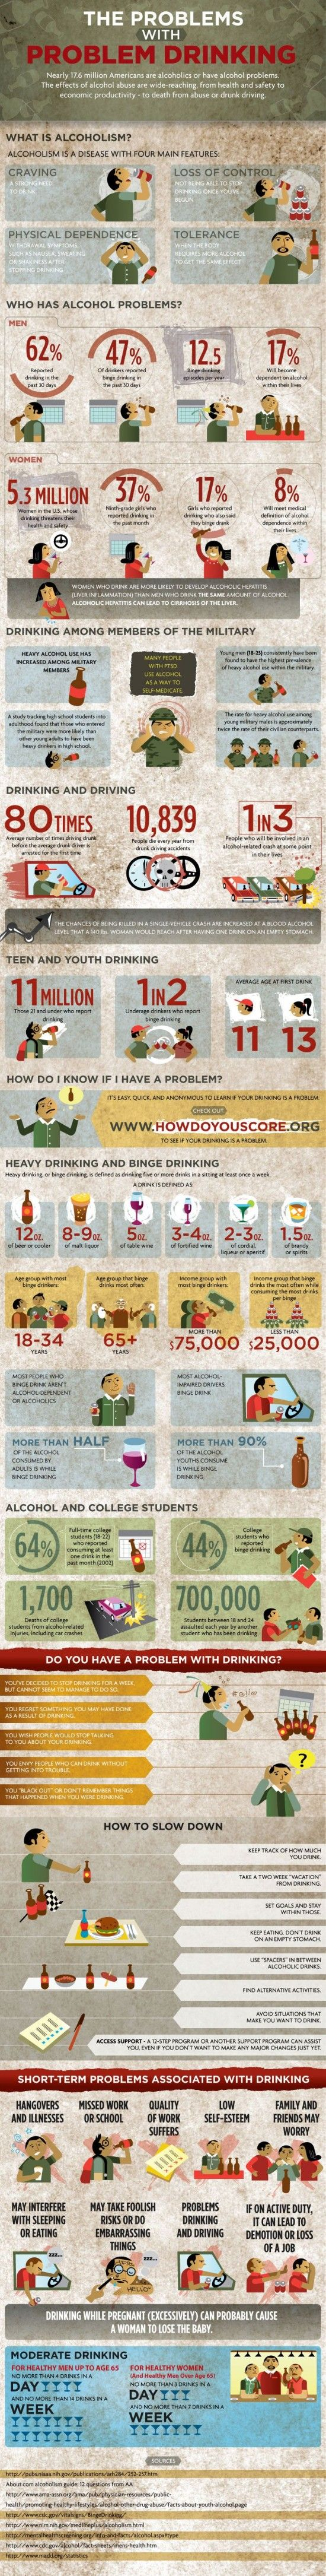 """Have you ever wondered, """"Am I an alcoholic?"""" Do you sometimes wonder if you're overly dependent on alcohol, or have a problem with binge drinking? The Infographic below covers useful information on alcohol abuse; including alcoholism symptoms, binge drinking, military alcohol abuse, youth drinking and more."""